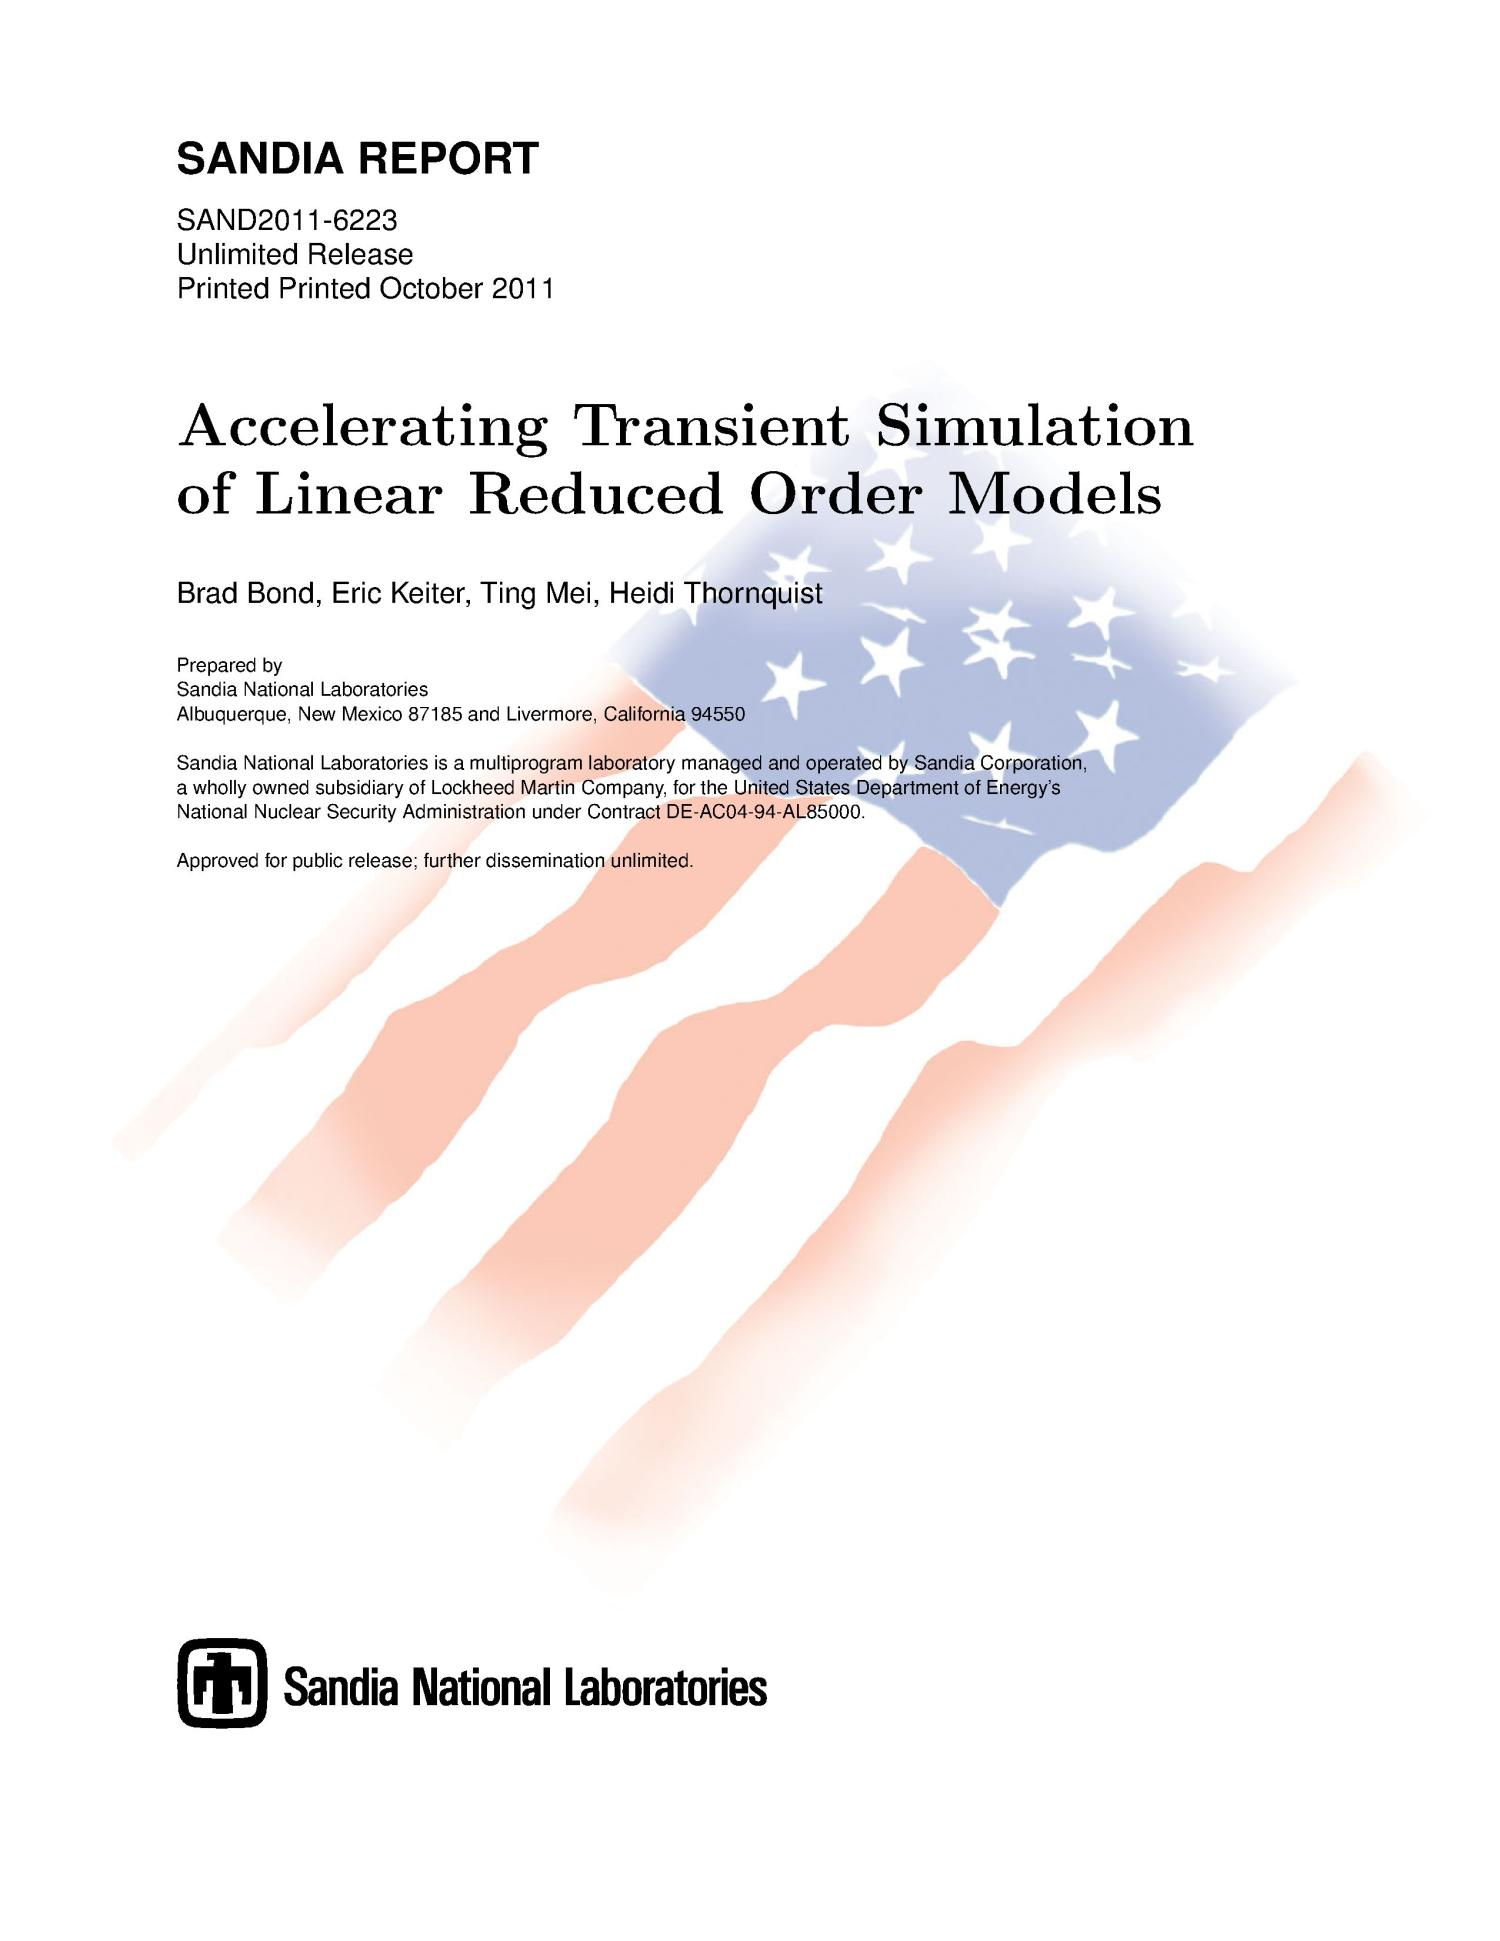 Accelerating transient simulation of linear reduced order models.                                                                                                      [Sequence #]: 1 of 38